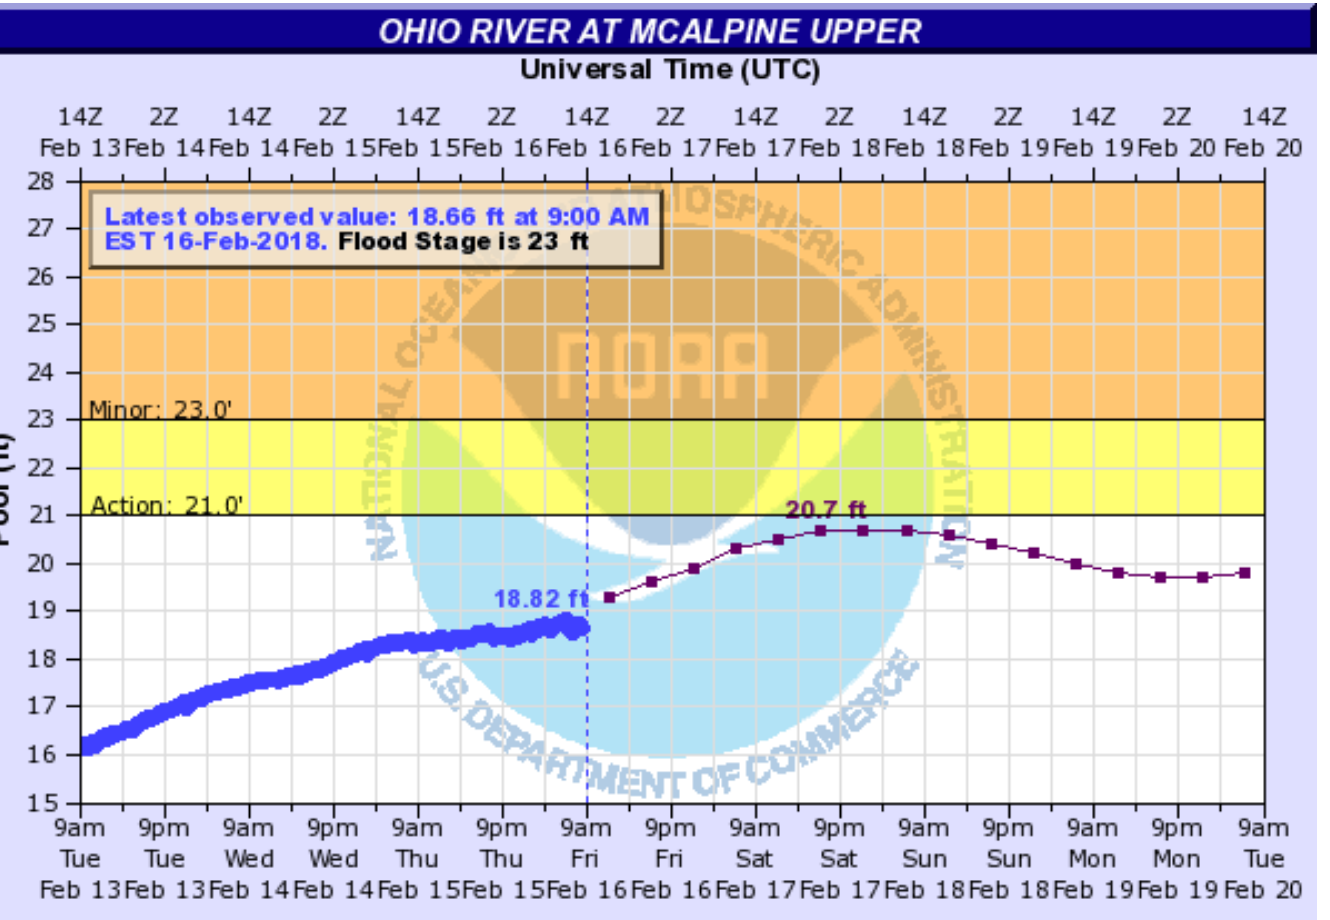 Crest lowered on the Ohio River flooding